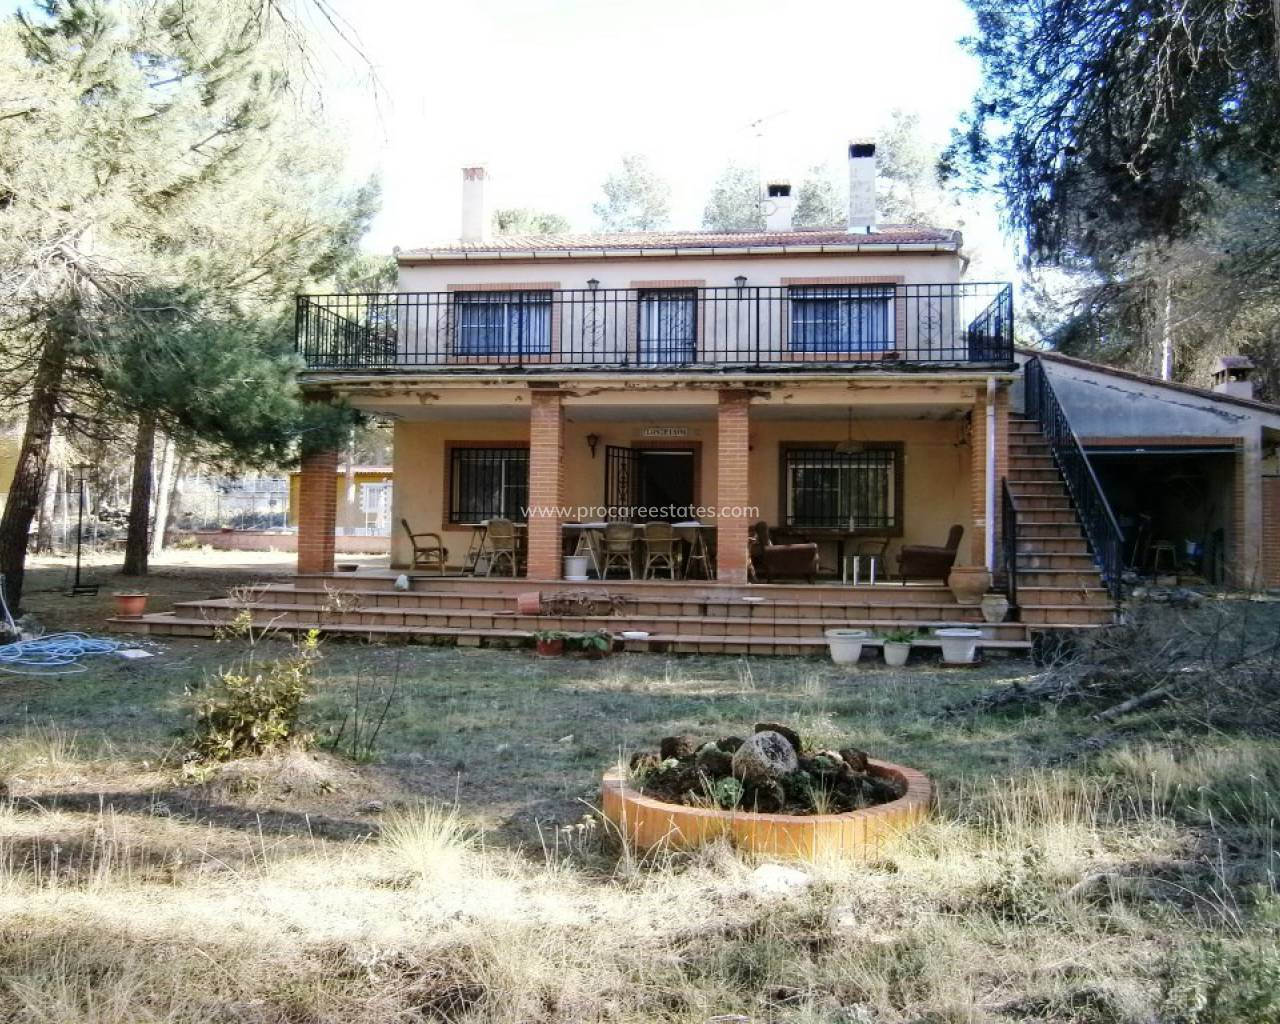 Country Property - Verkoop - Bocairent - Bocairent